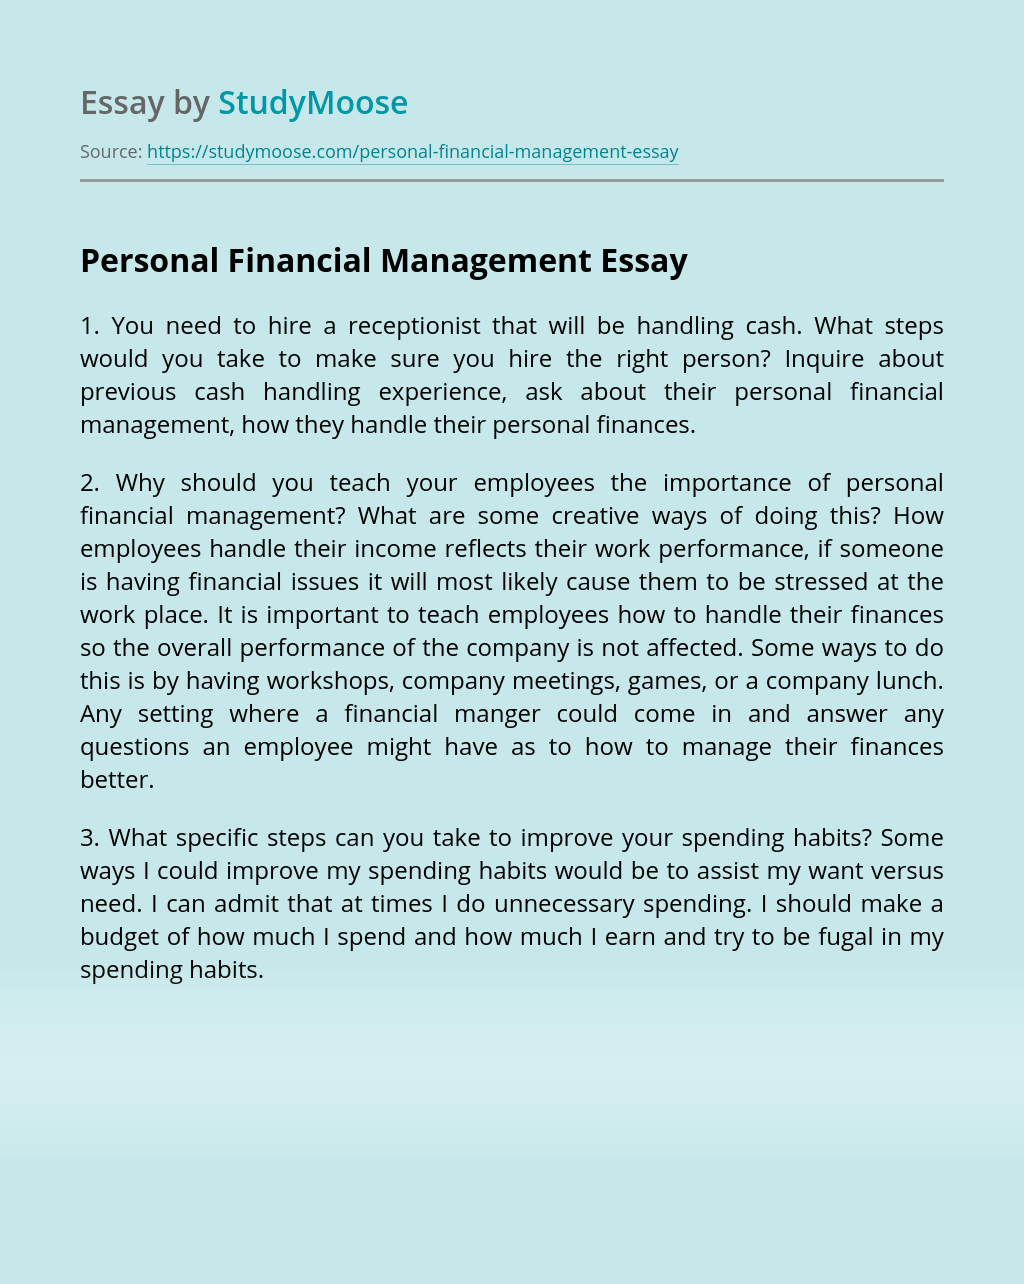 Personal Financial Management